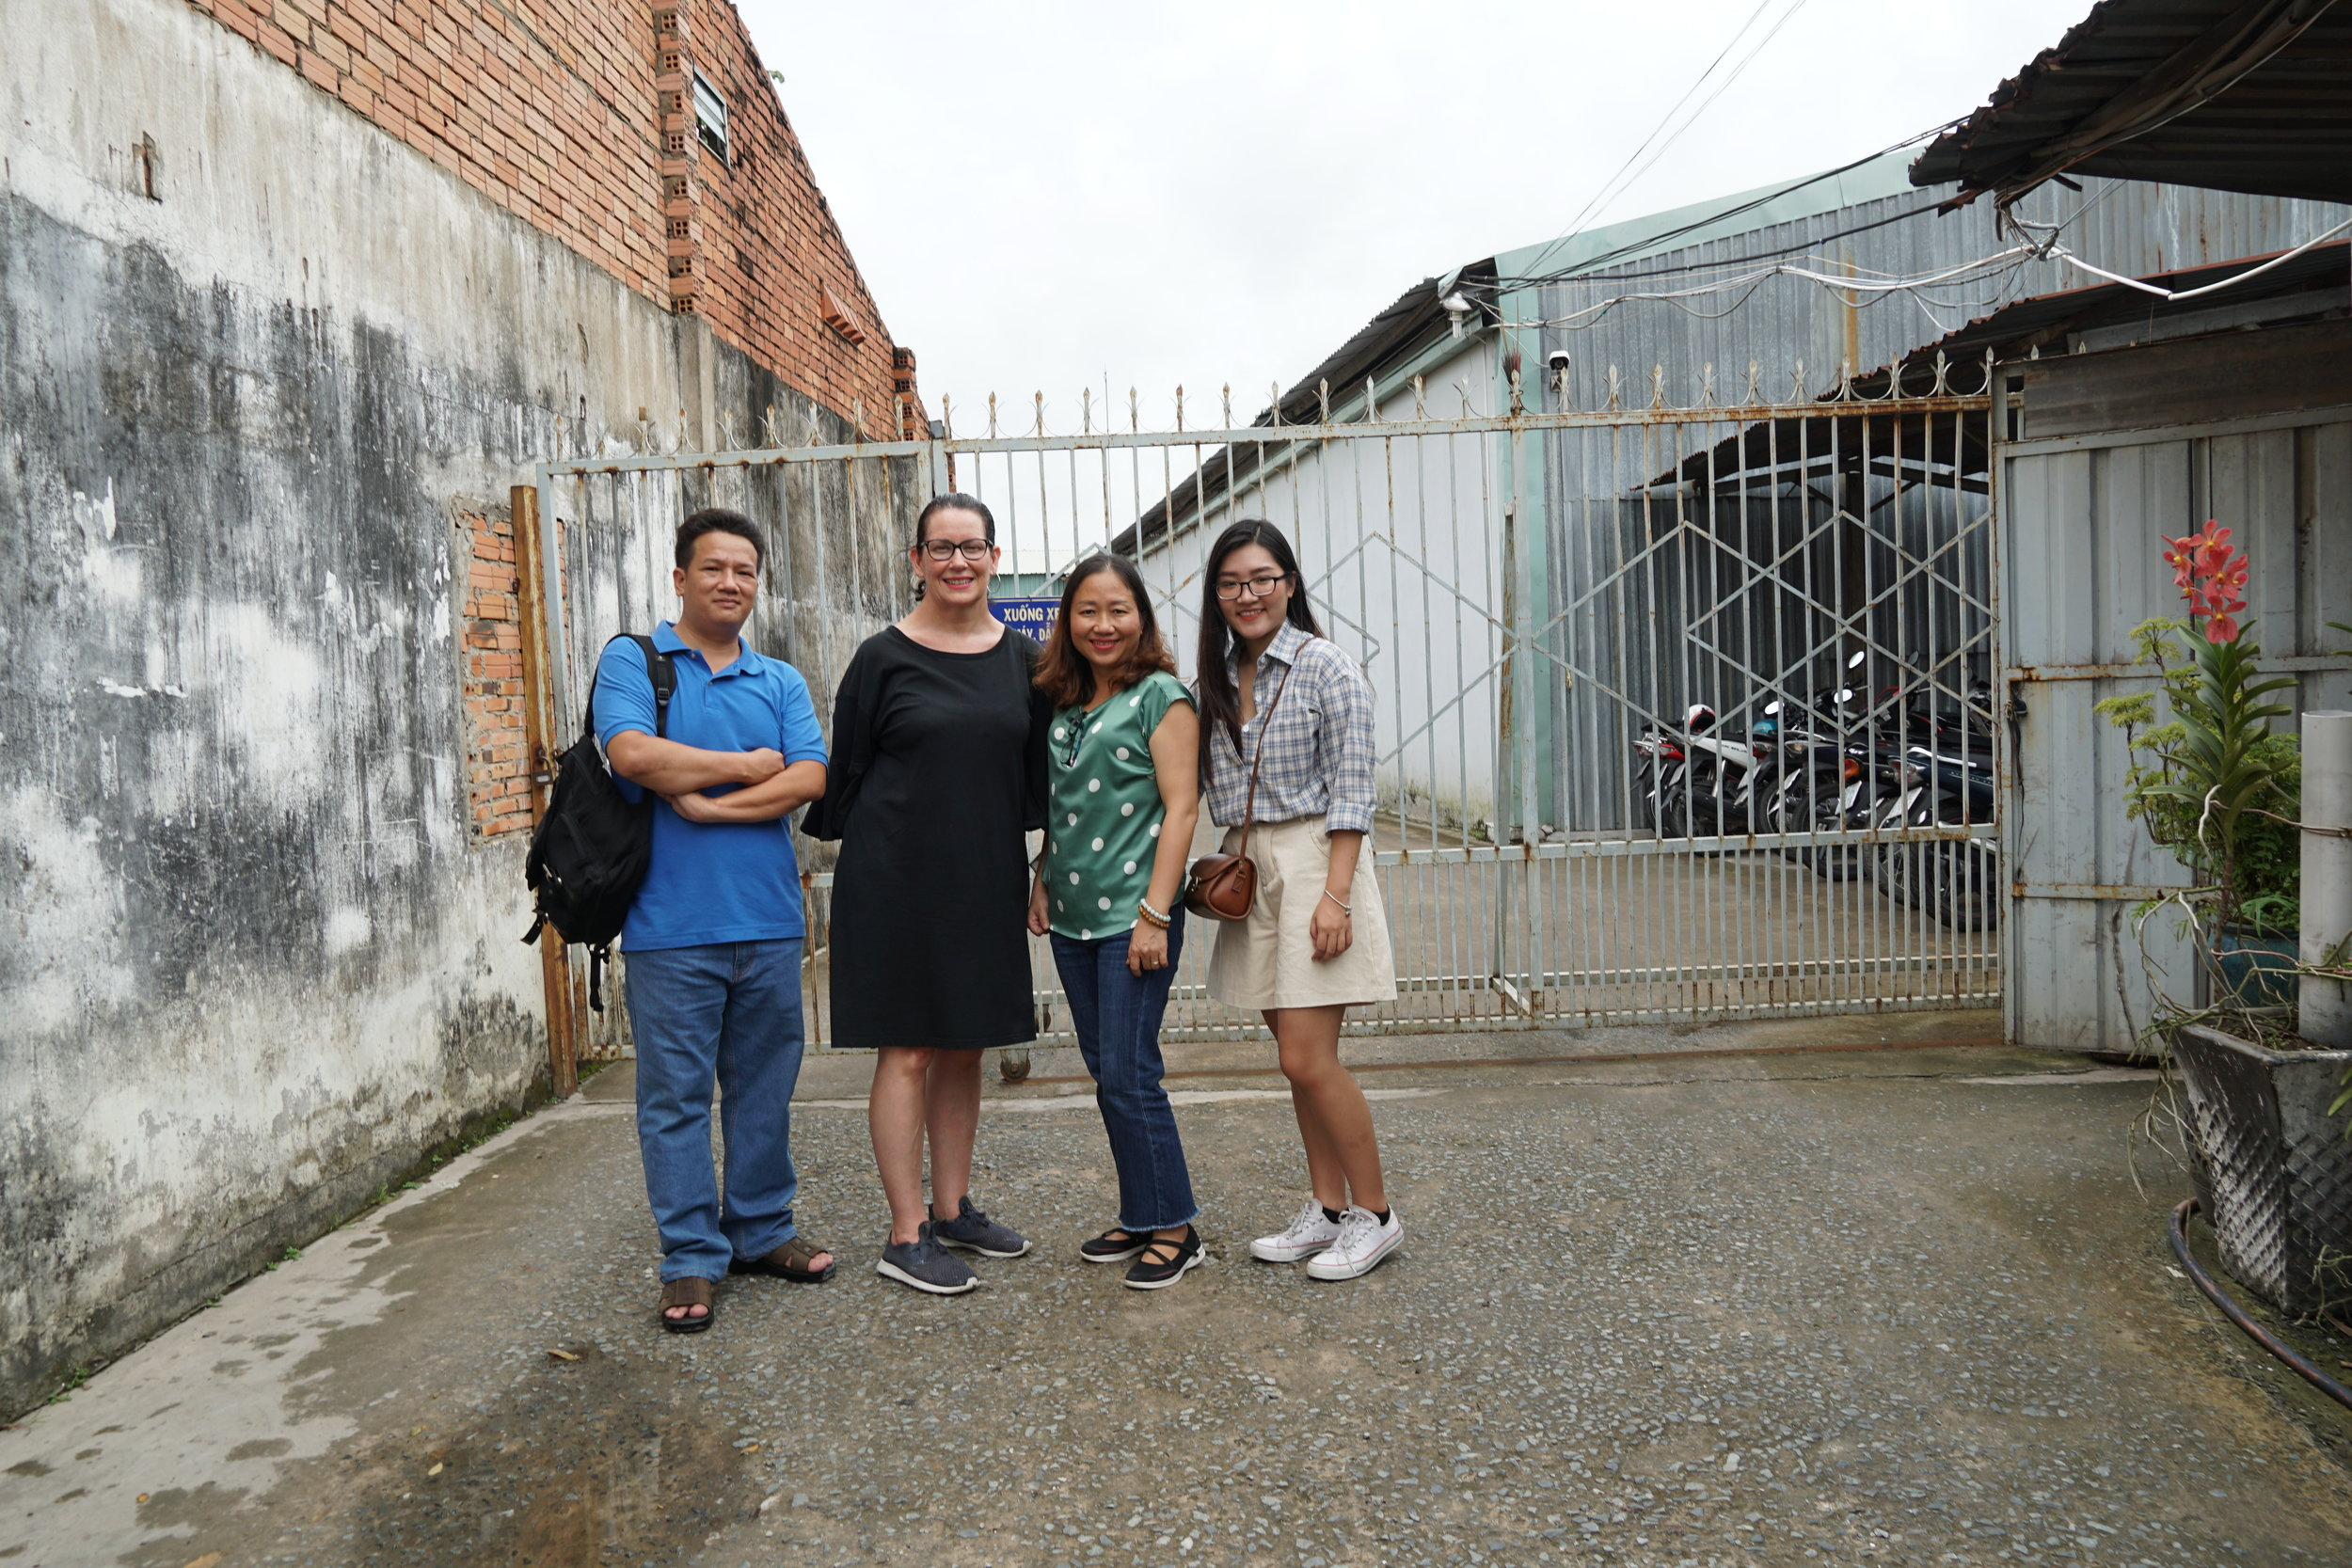 Khiet and Jane and Naturecraft owner Tran Thi Tam, with Vicky Vo, the Manufacturing Creativity Project Assistant based in Ho CHi Minh city.